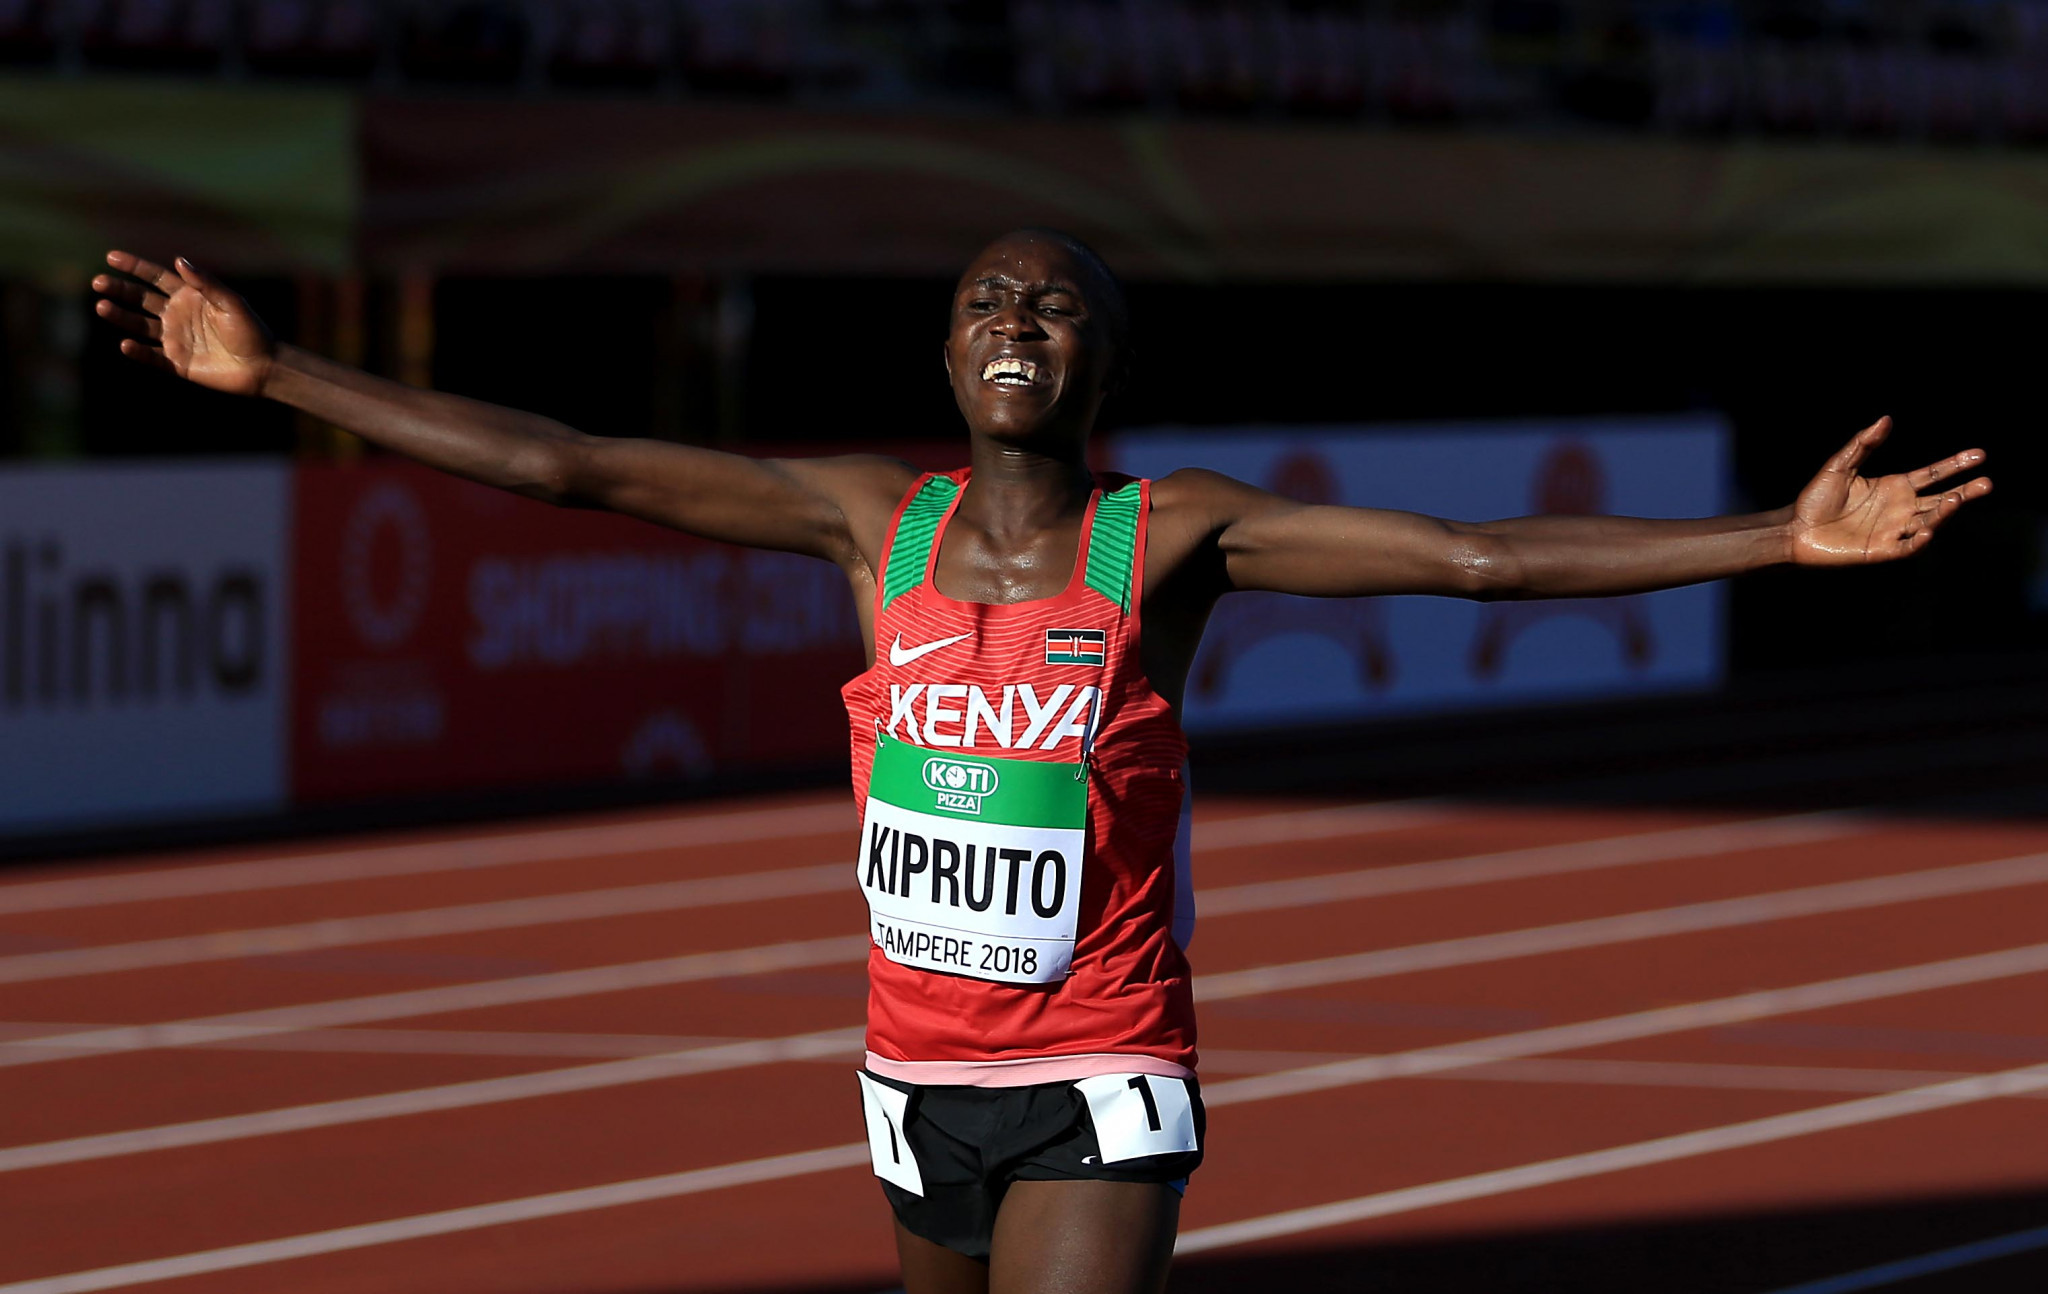 Comfortable wins for Kipruto and Obiri on IAAF Cross Country Permit circuit in Elgoibar